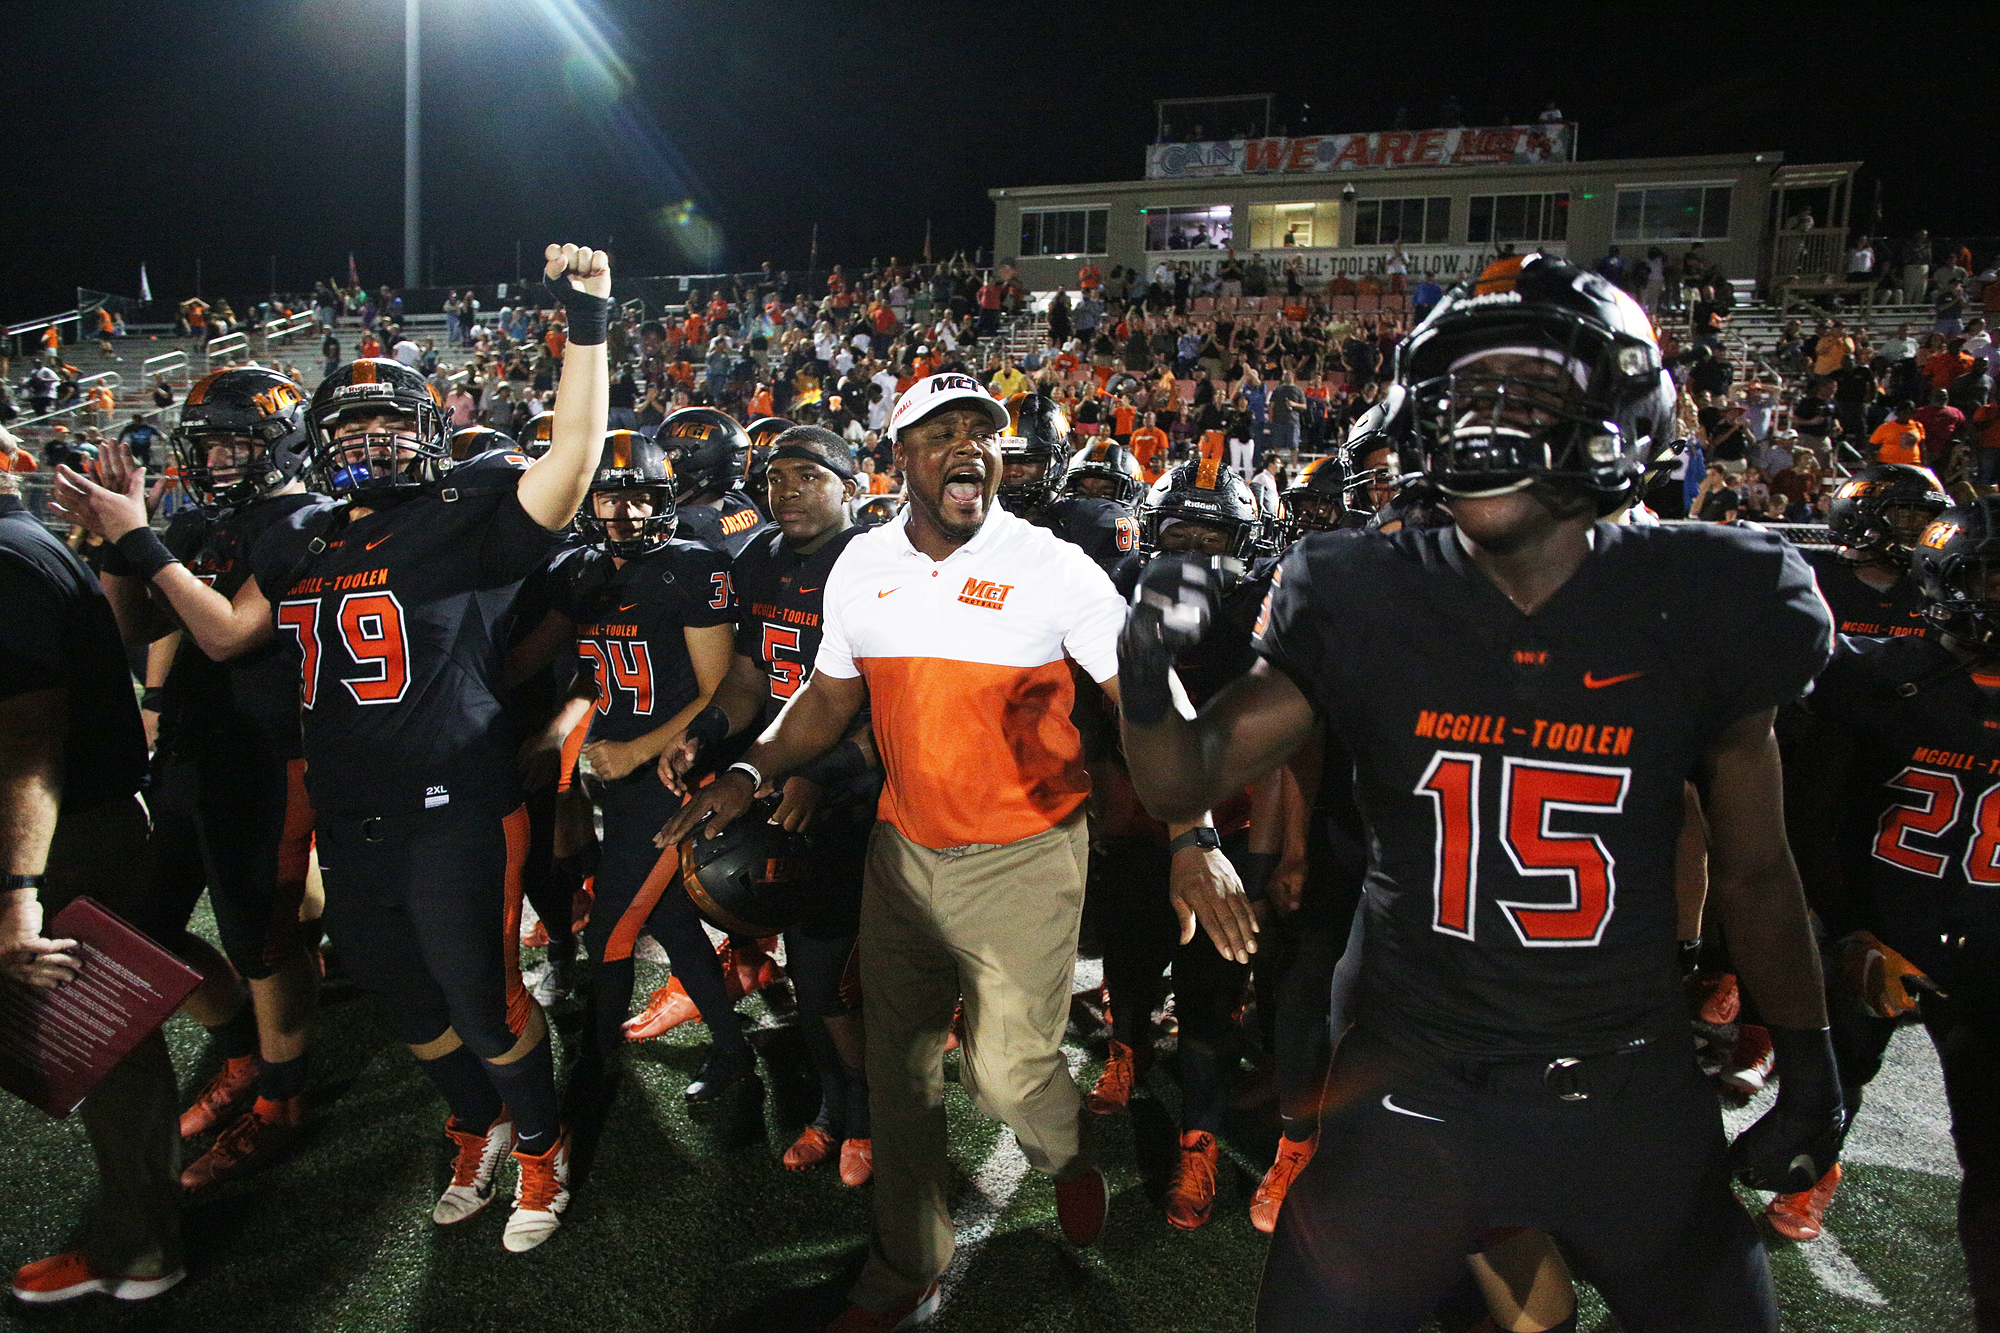 Week 9 local high school football scores and postgame interviews with winning coaches!